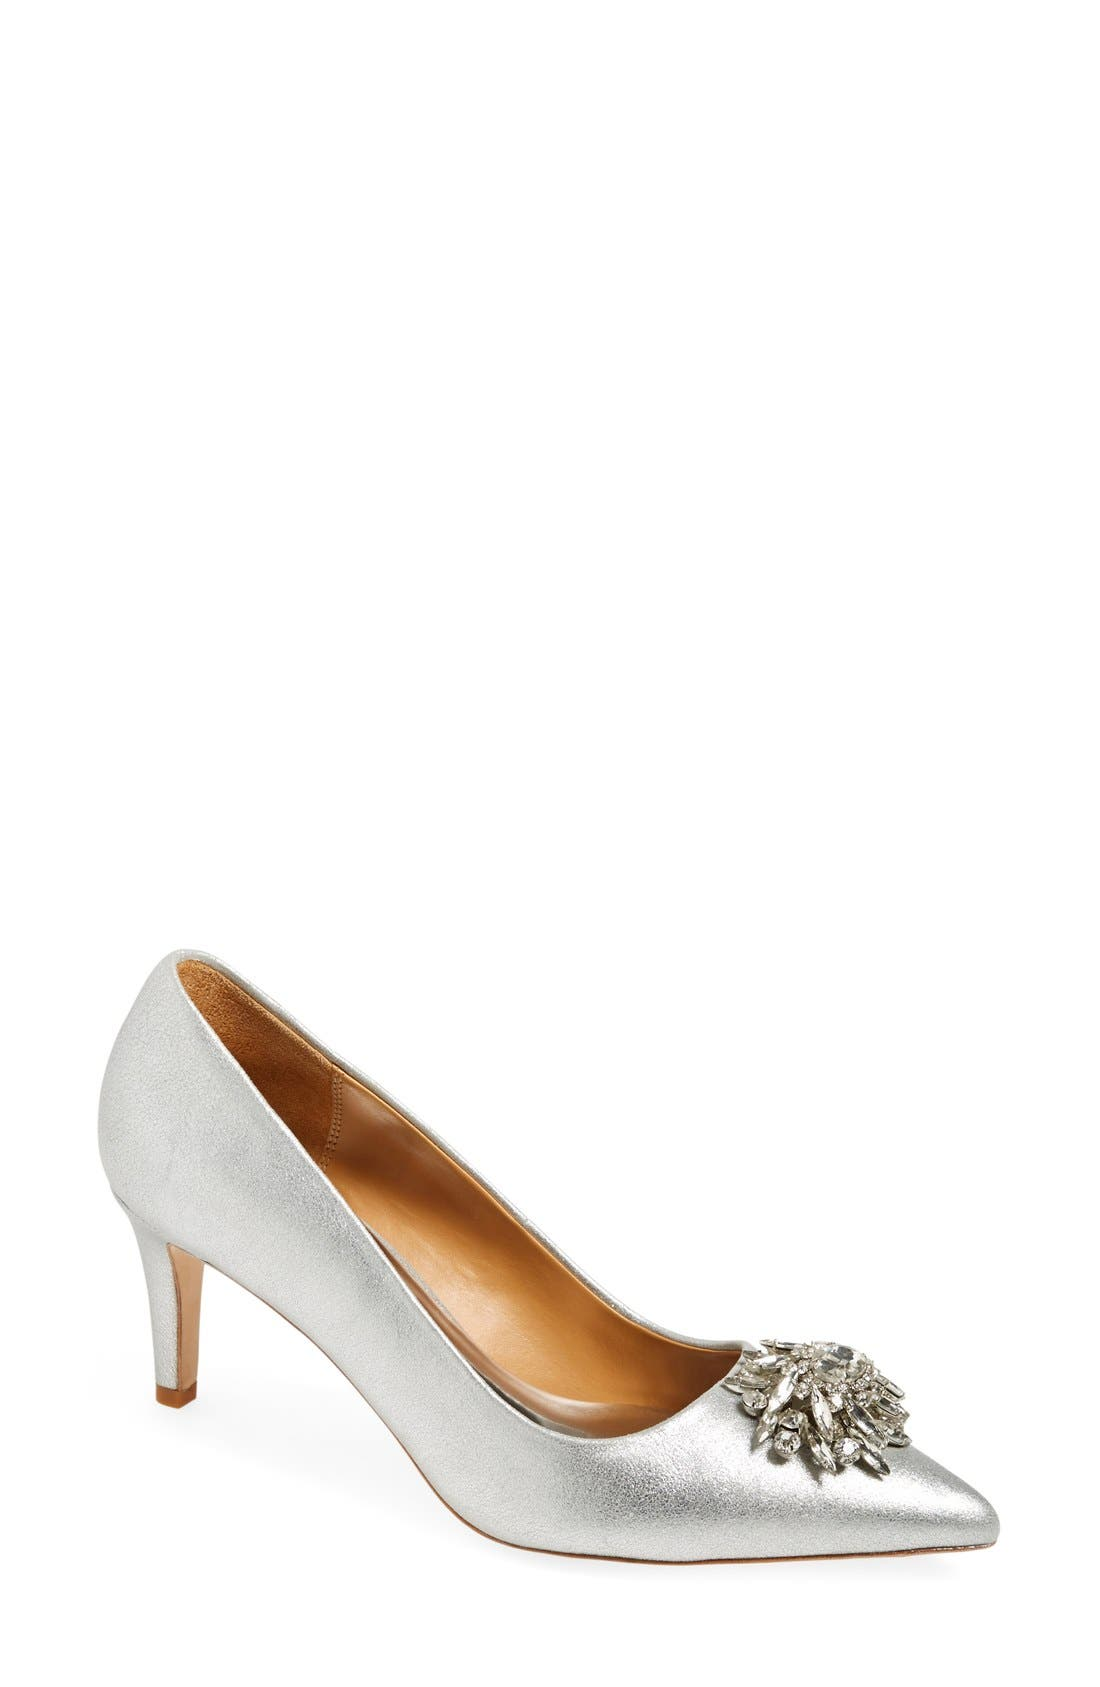 Main Image - Badgley Mischka 'Gardenia' Pointy Toe Pump (Women)